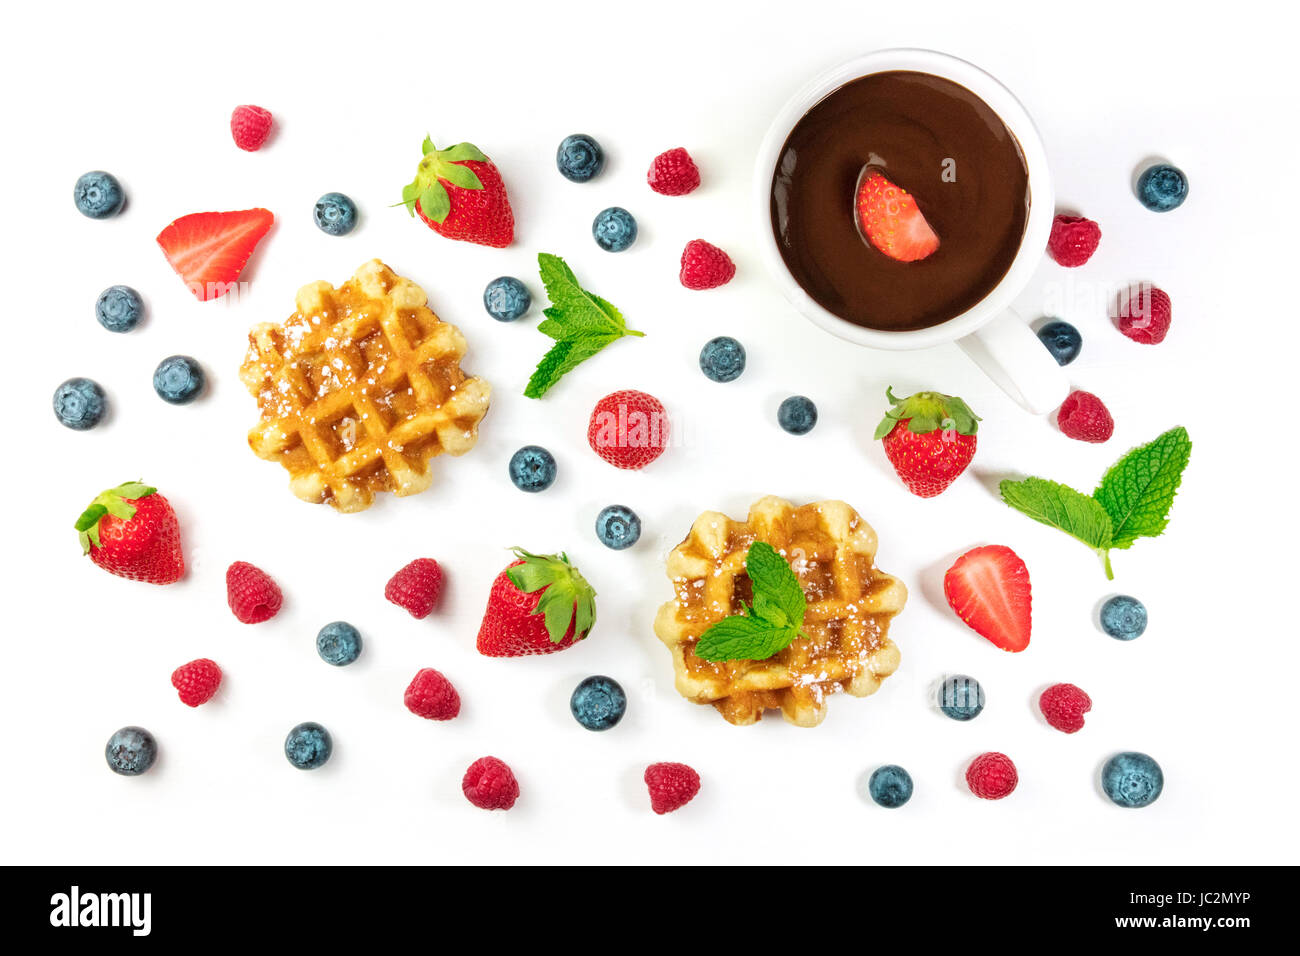 Belgian waffles with fresh fruit, mint leaves, and chocolate - Stock Image